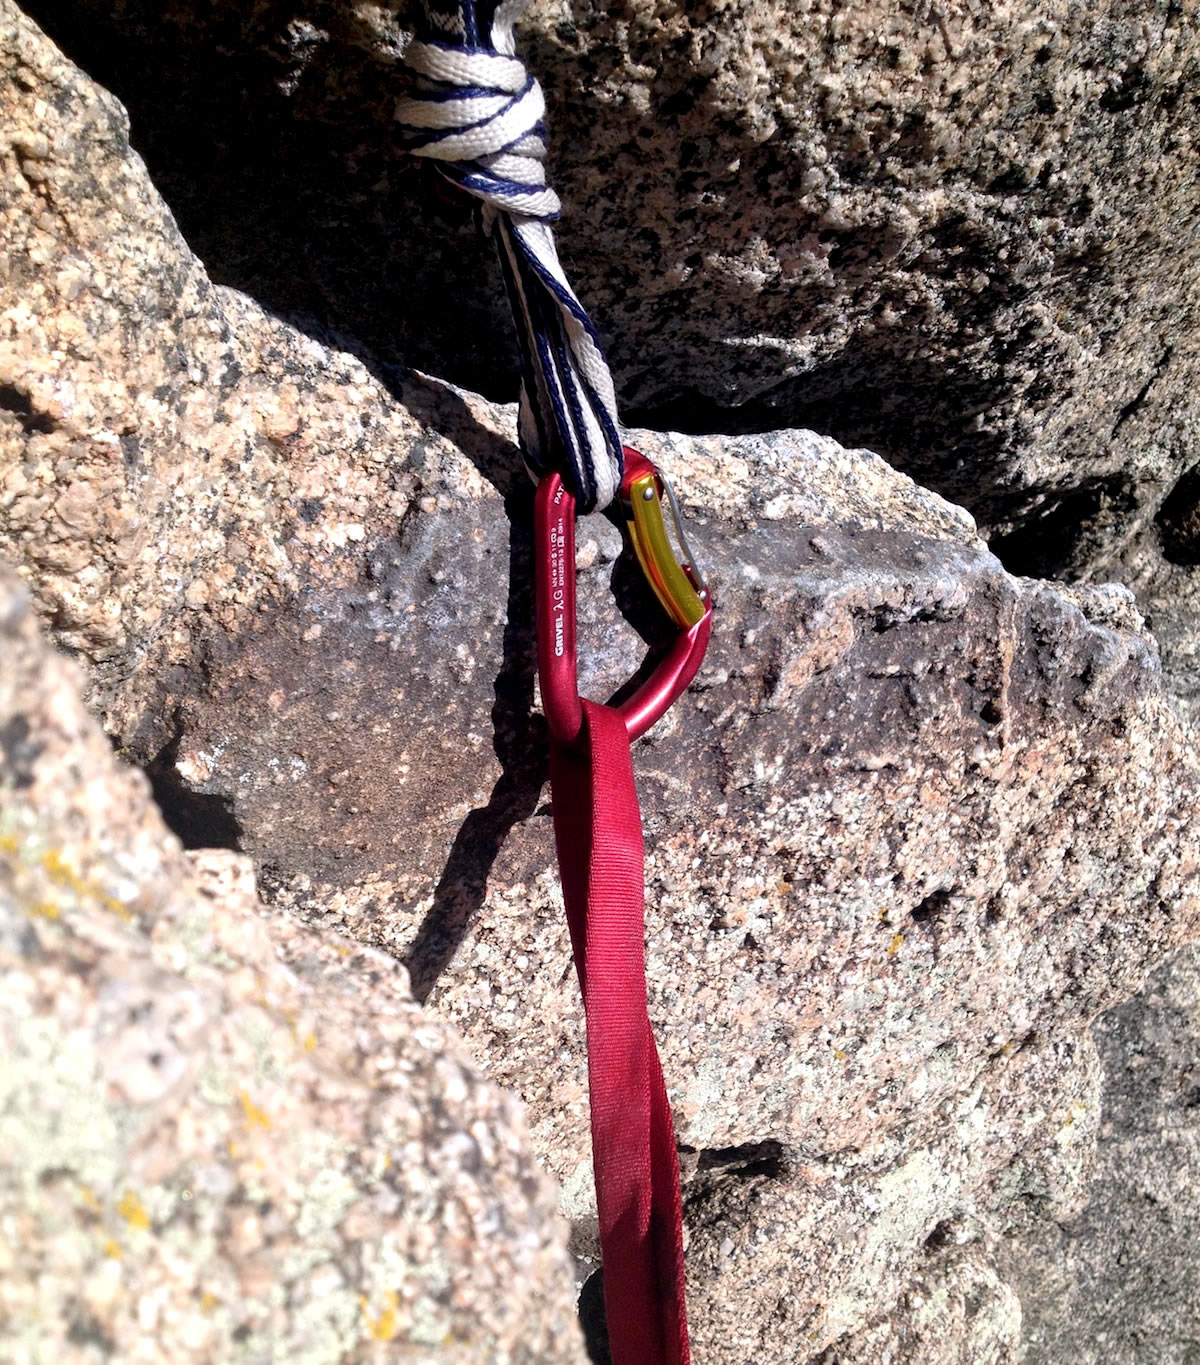 The auto-locking Lambda also worked well in situations where the climber had to clip into an anchor with one hand, which can be difficult with other auto-locking carabiners. [Photo] Alexander Kenan